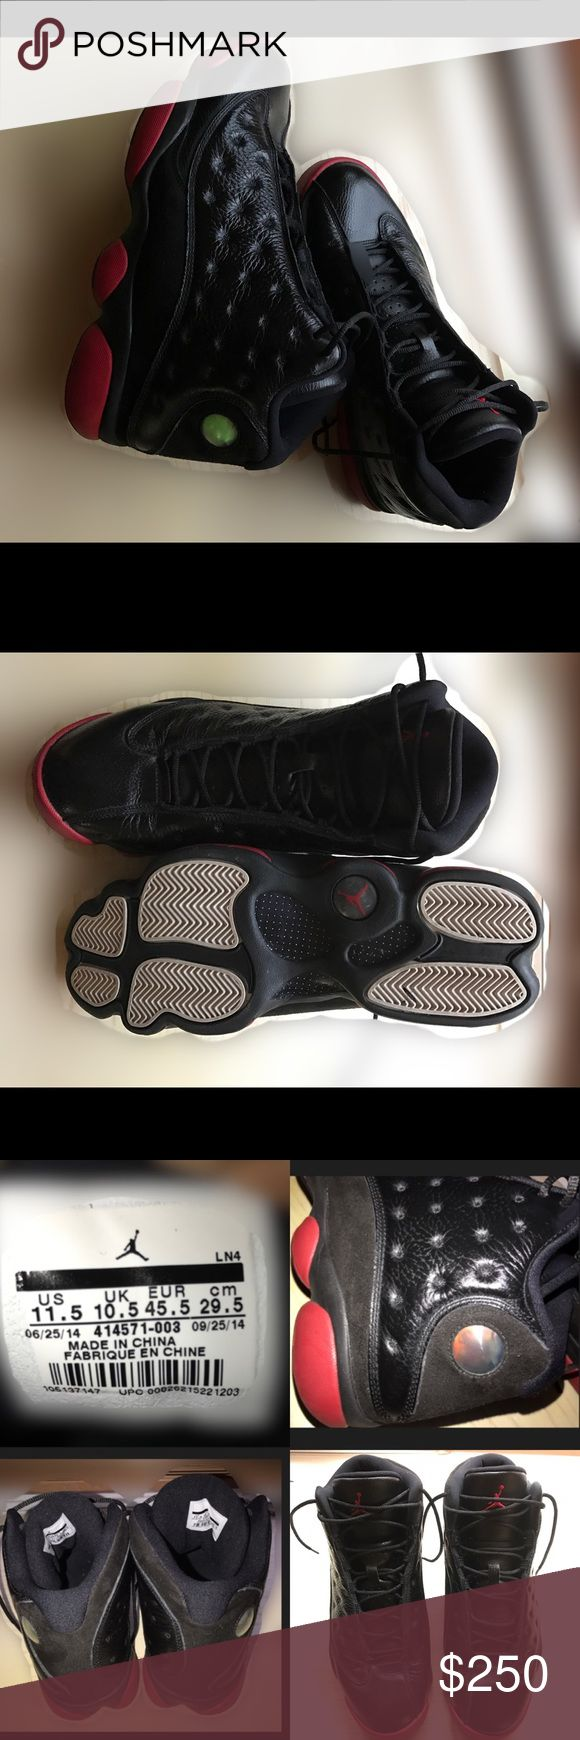 Retro Jordan 13! Worn once! Black & Red leather Air Jordan Retro 13s. Like new! No scratches, scuffs or marks. Almost no visible we on soles. Authentic! Jordan Shoes Sneakers